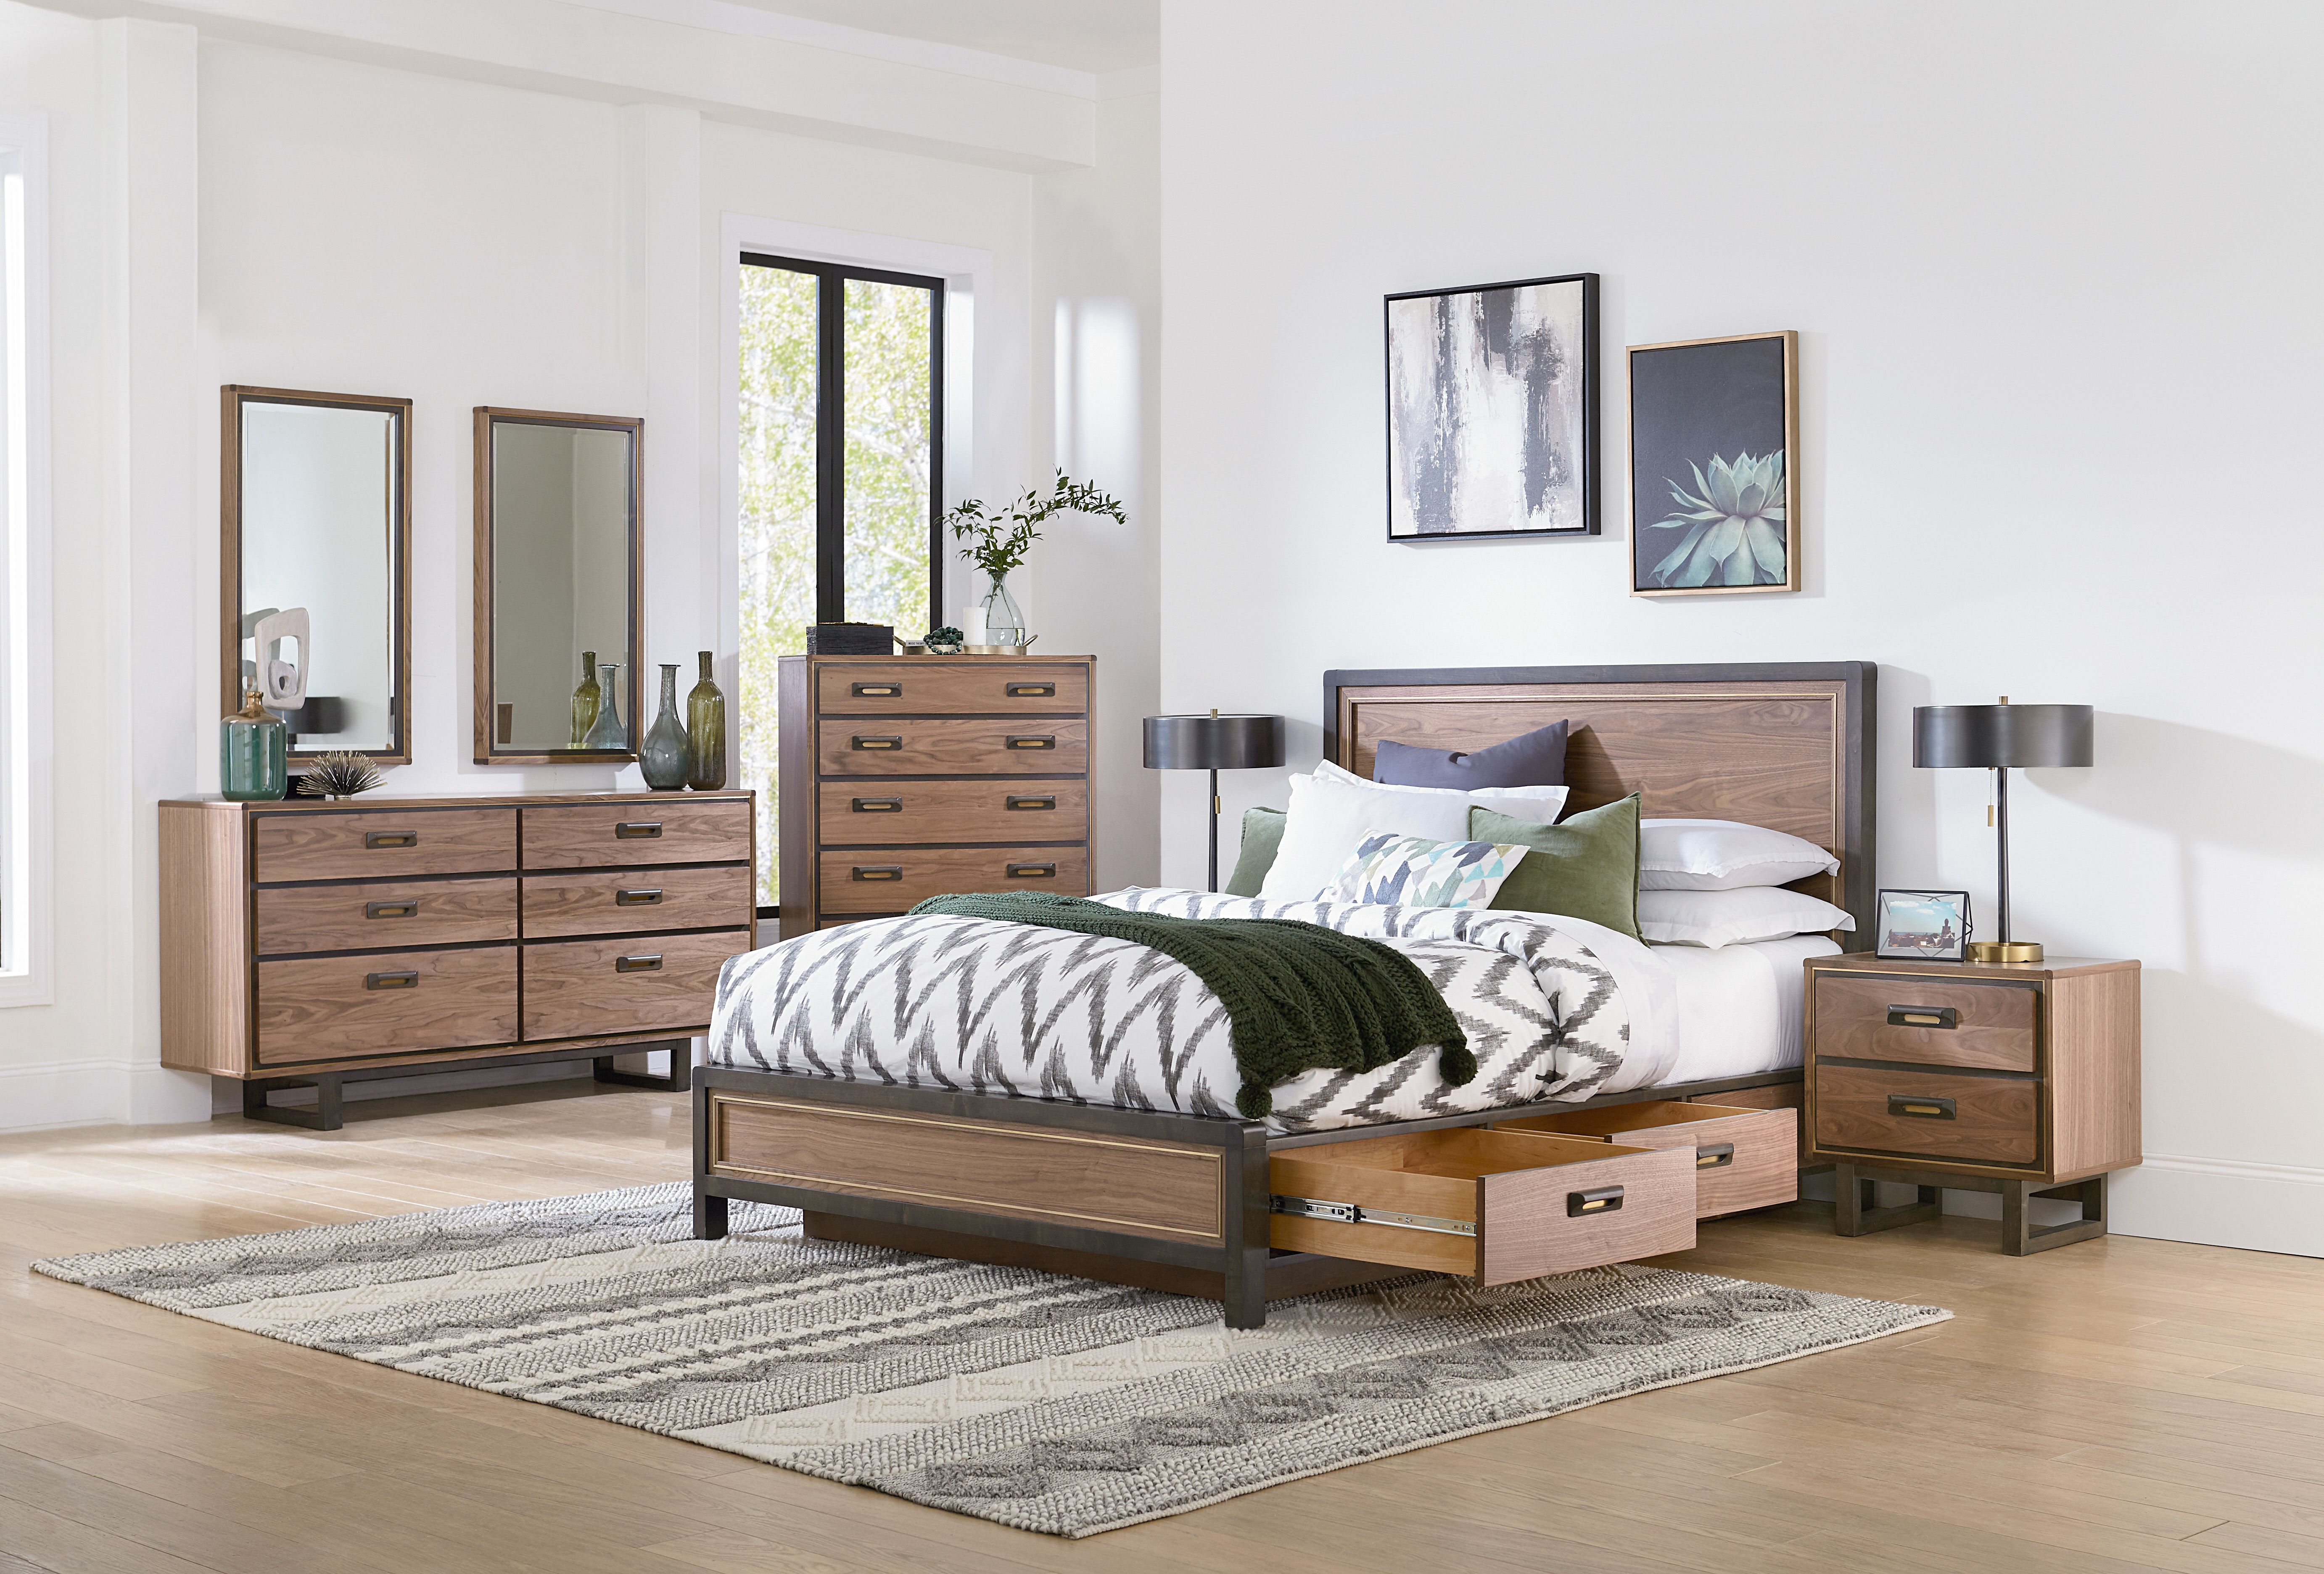 Whittier Wood Furniture Furniture Unfinished Furniture Wood Furniture